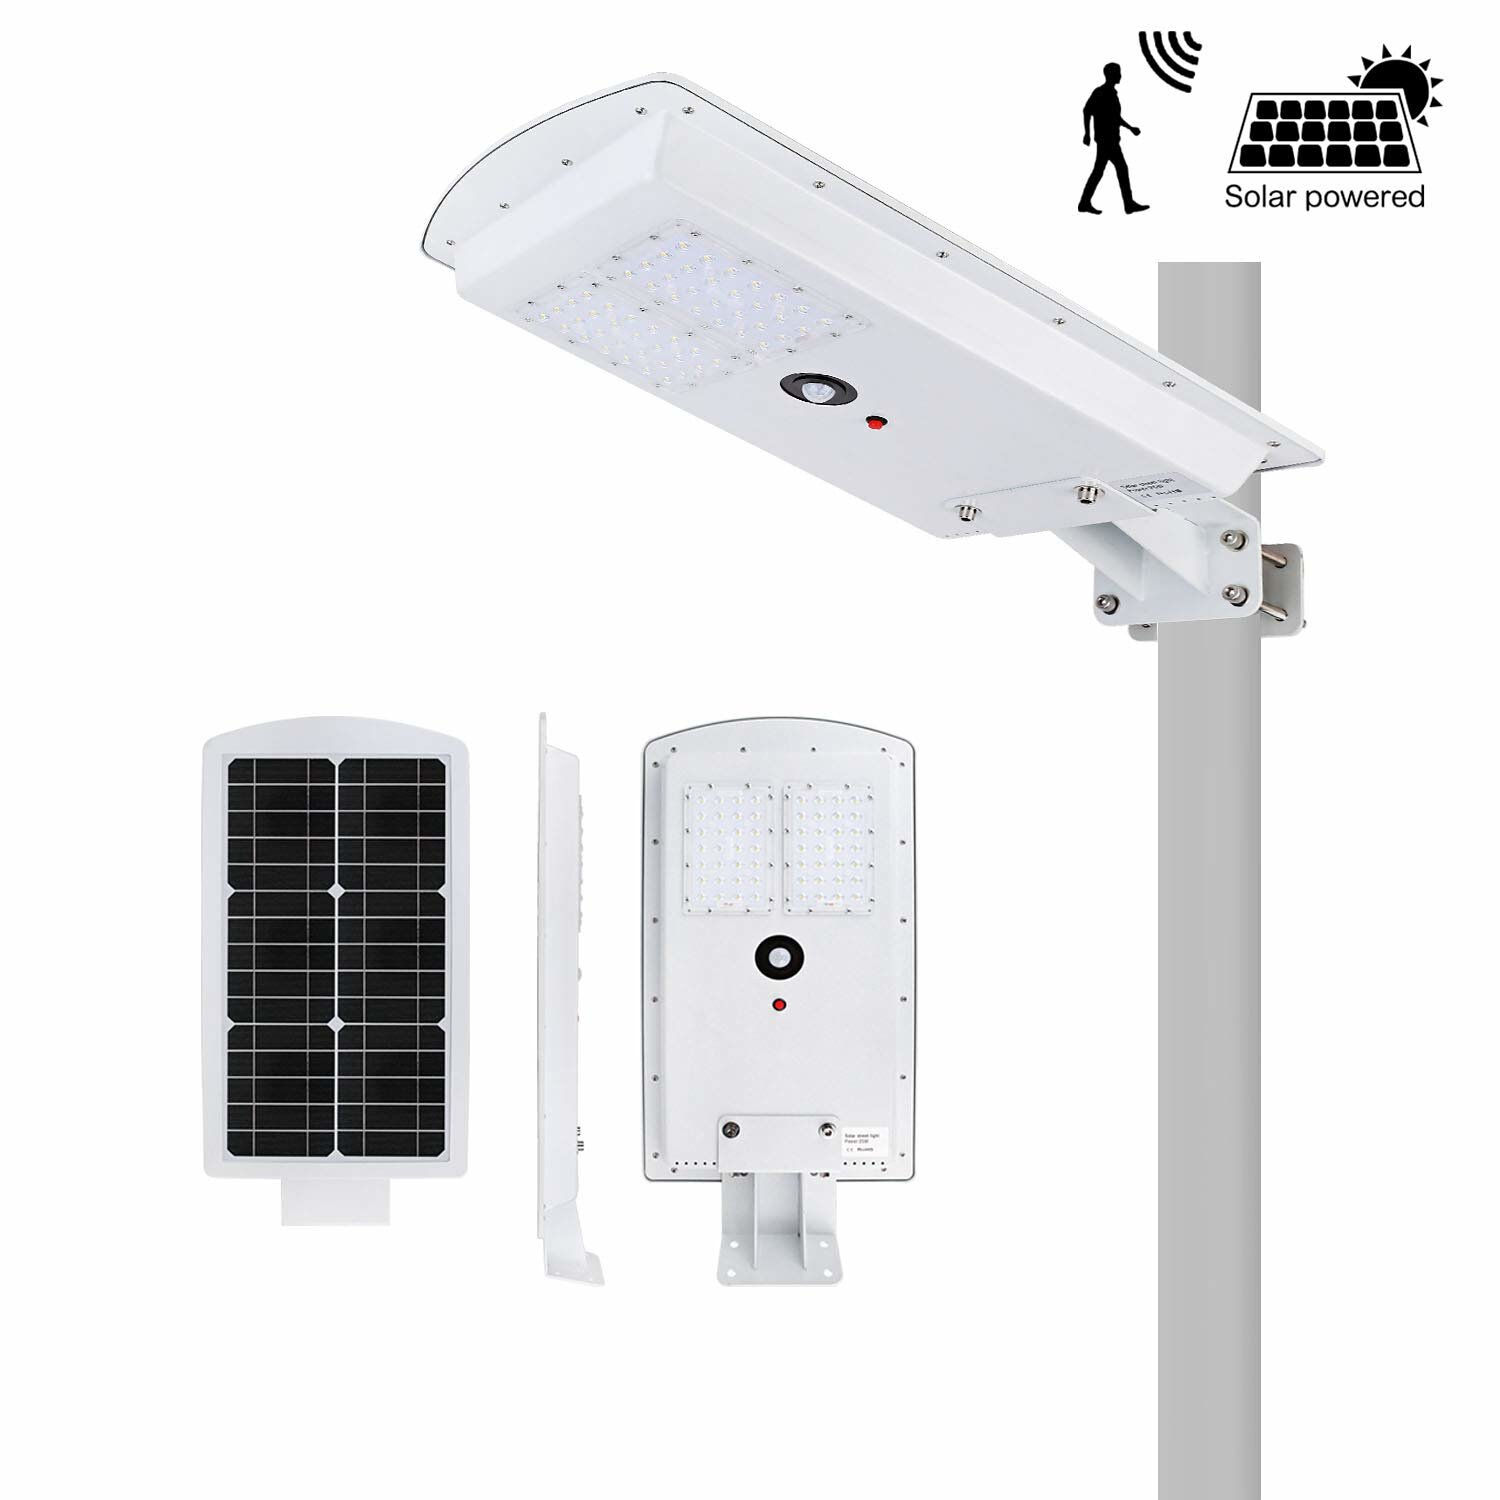 Solar LED Street Light 25W Auto On//Off Dusk to Dawn Integrated Waterproof IP65 Outdoor Flood Light with PIR Motion Sensor All-in-one Cordless Solar Powered Commercial Security Lights 6500K Ultra-brigh